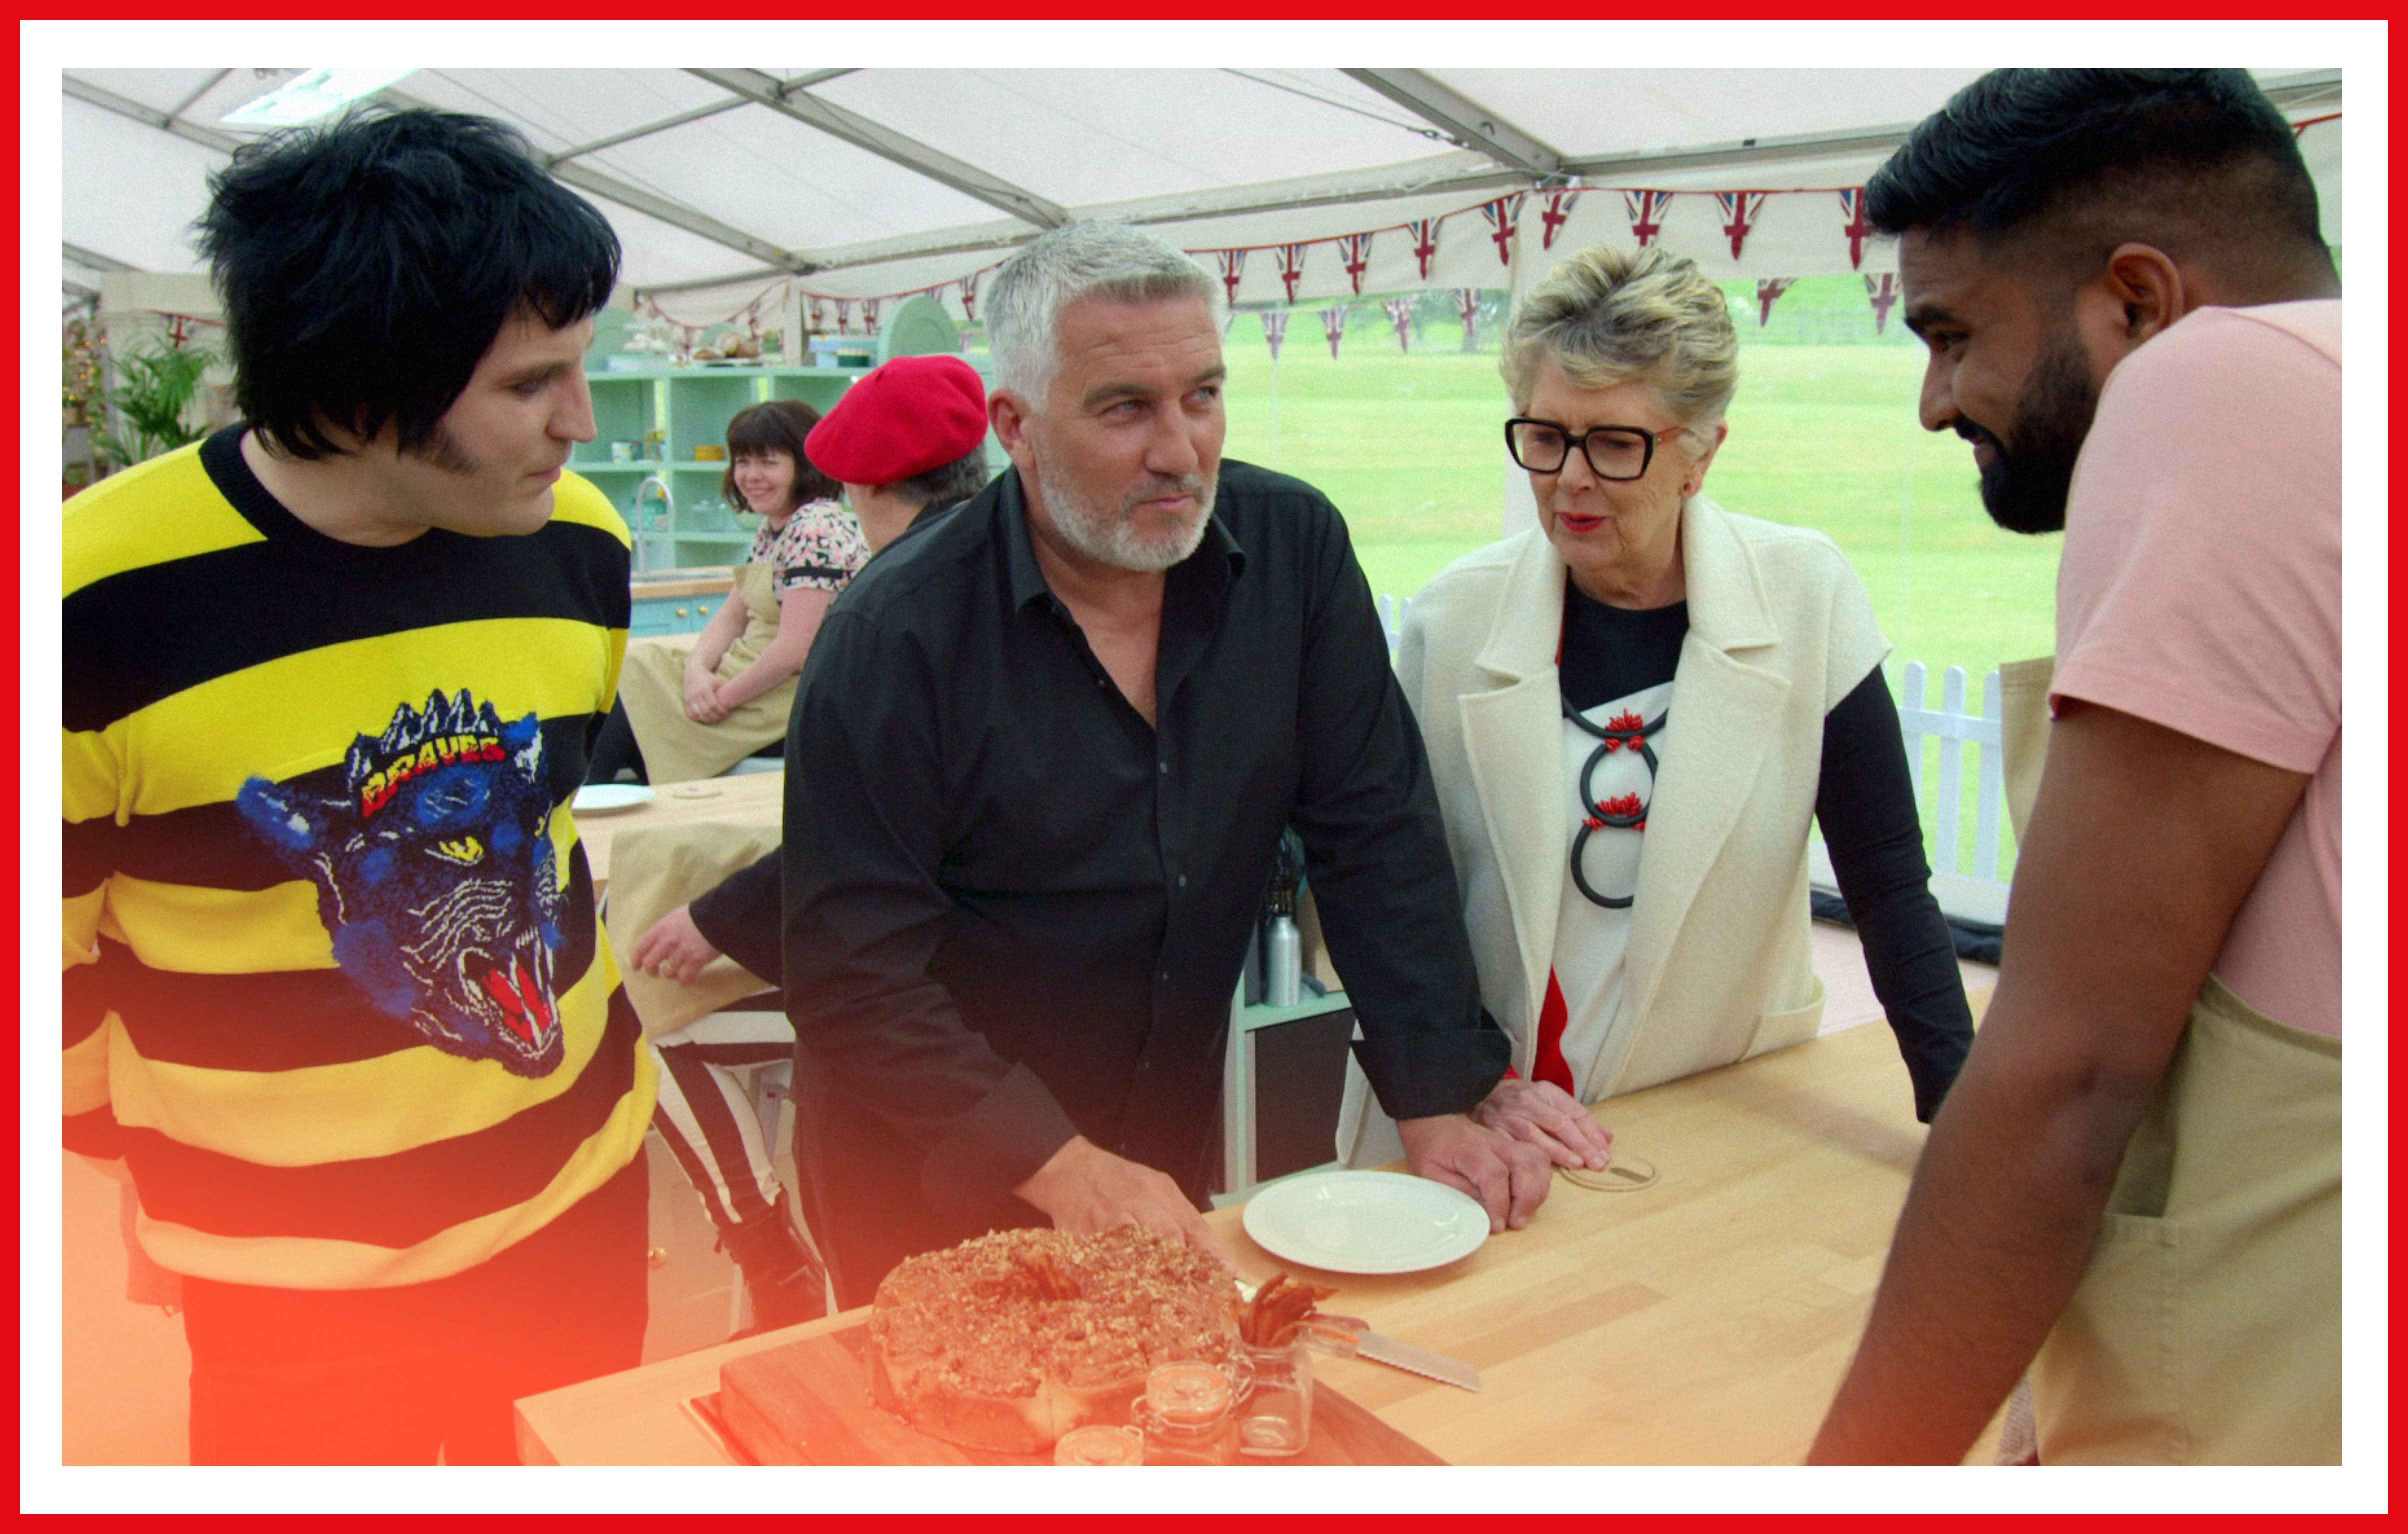 Paul Hollywood gives Antony that signature blank stare as he assesses his bake.